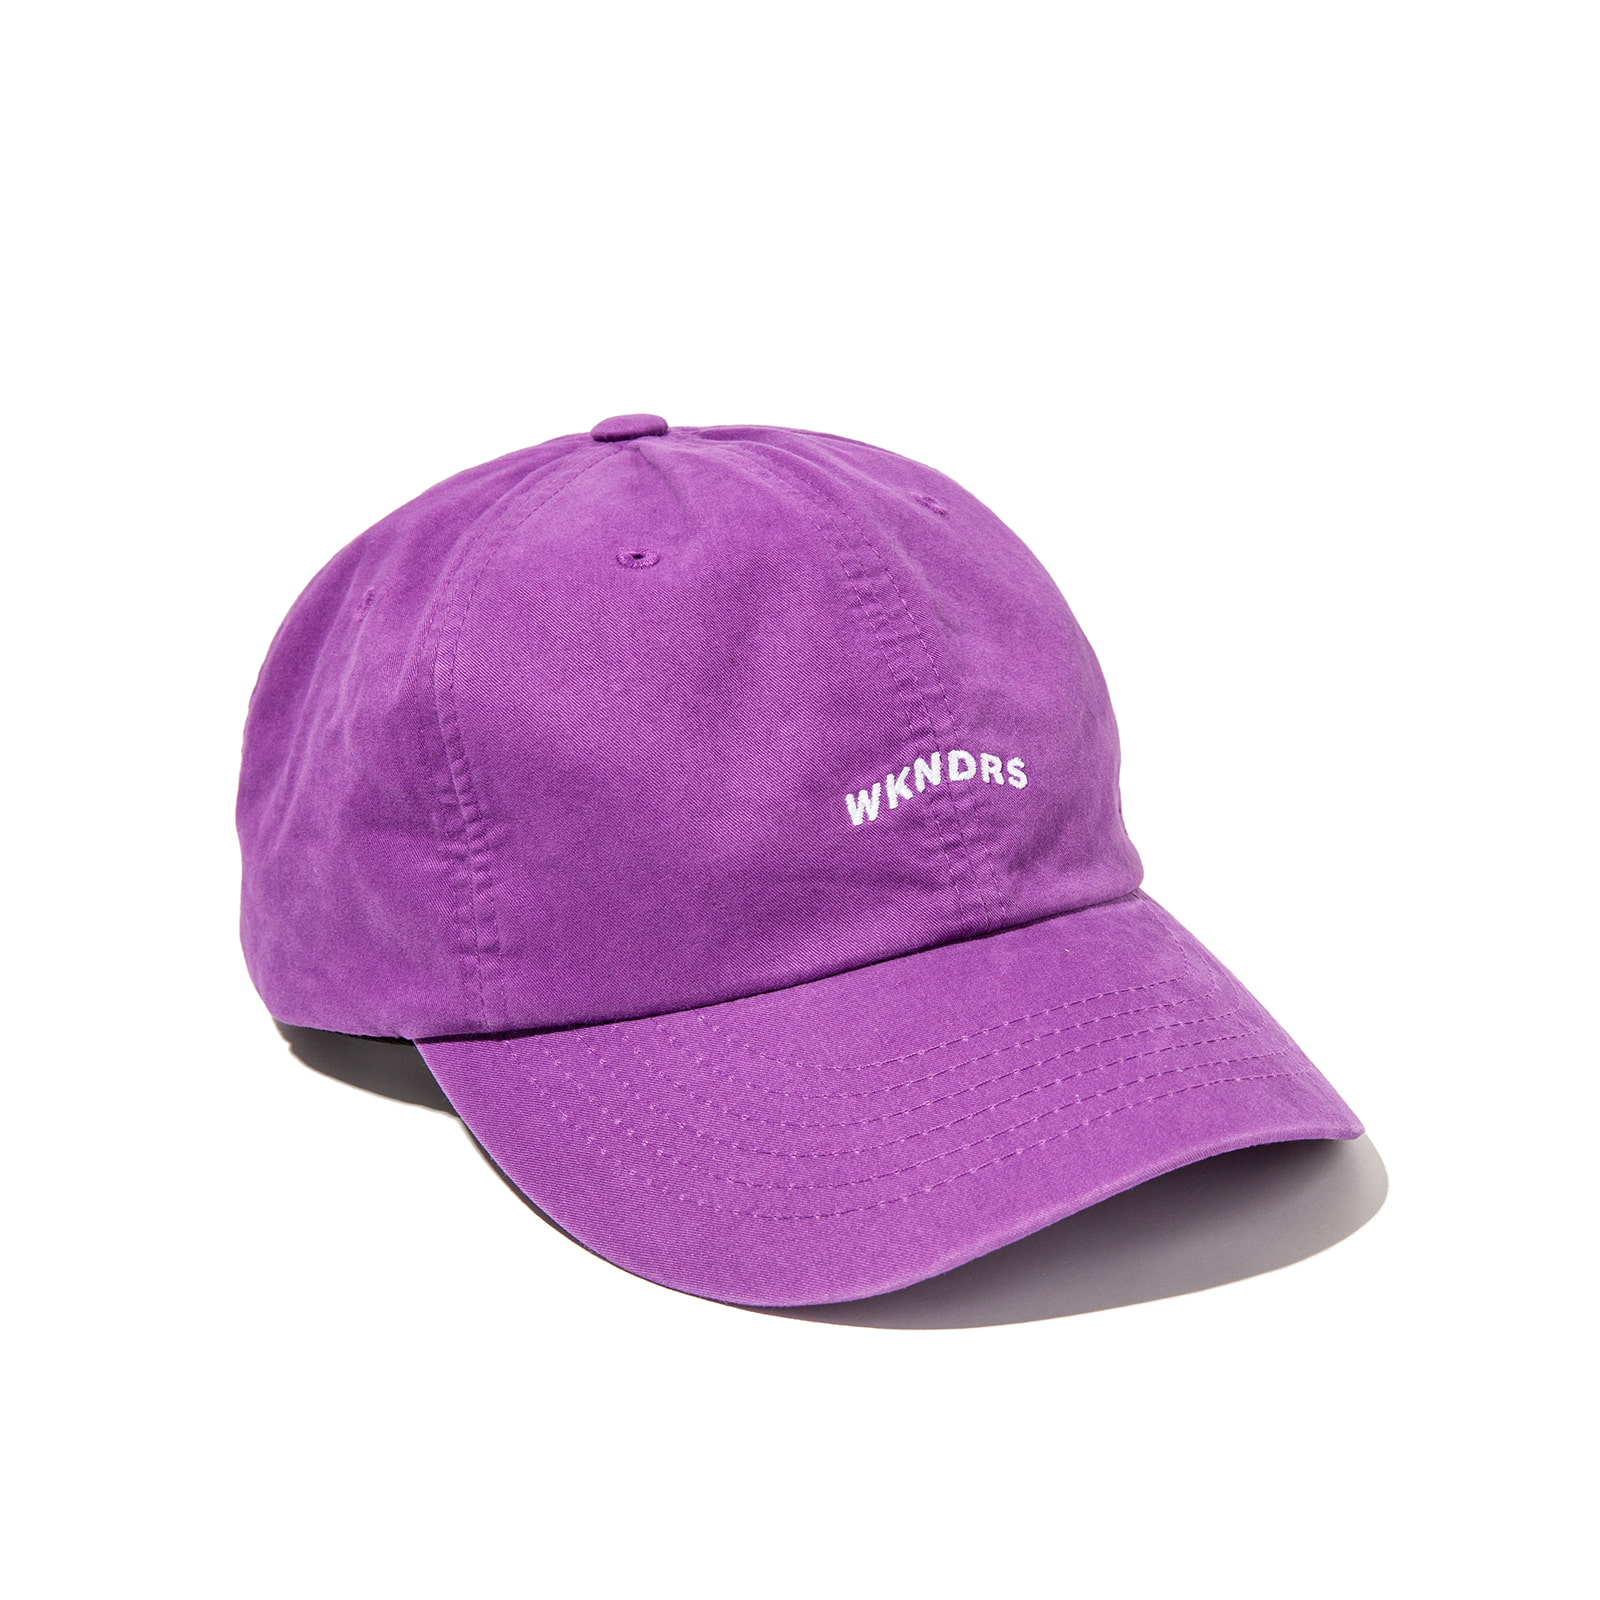 WKNDRS  WAVY CAP (PURPLE)